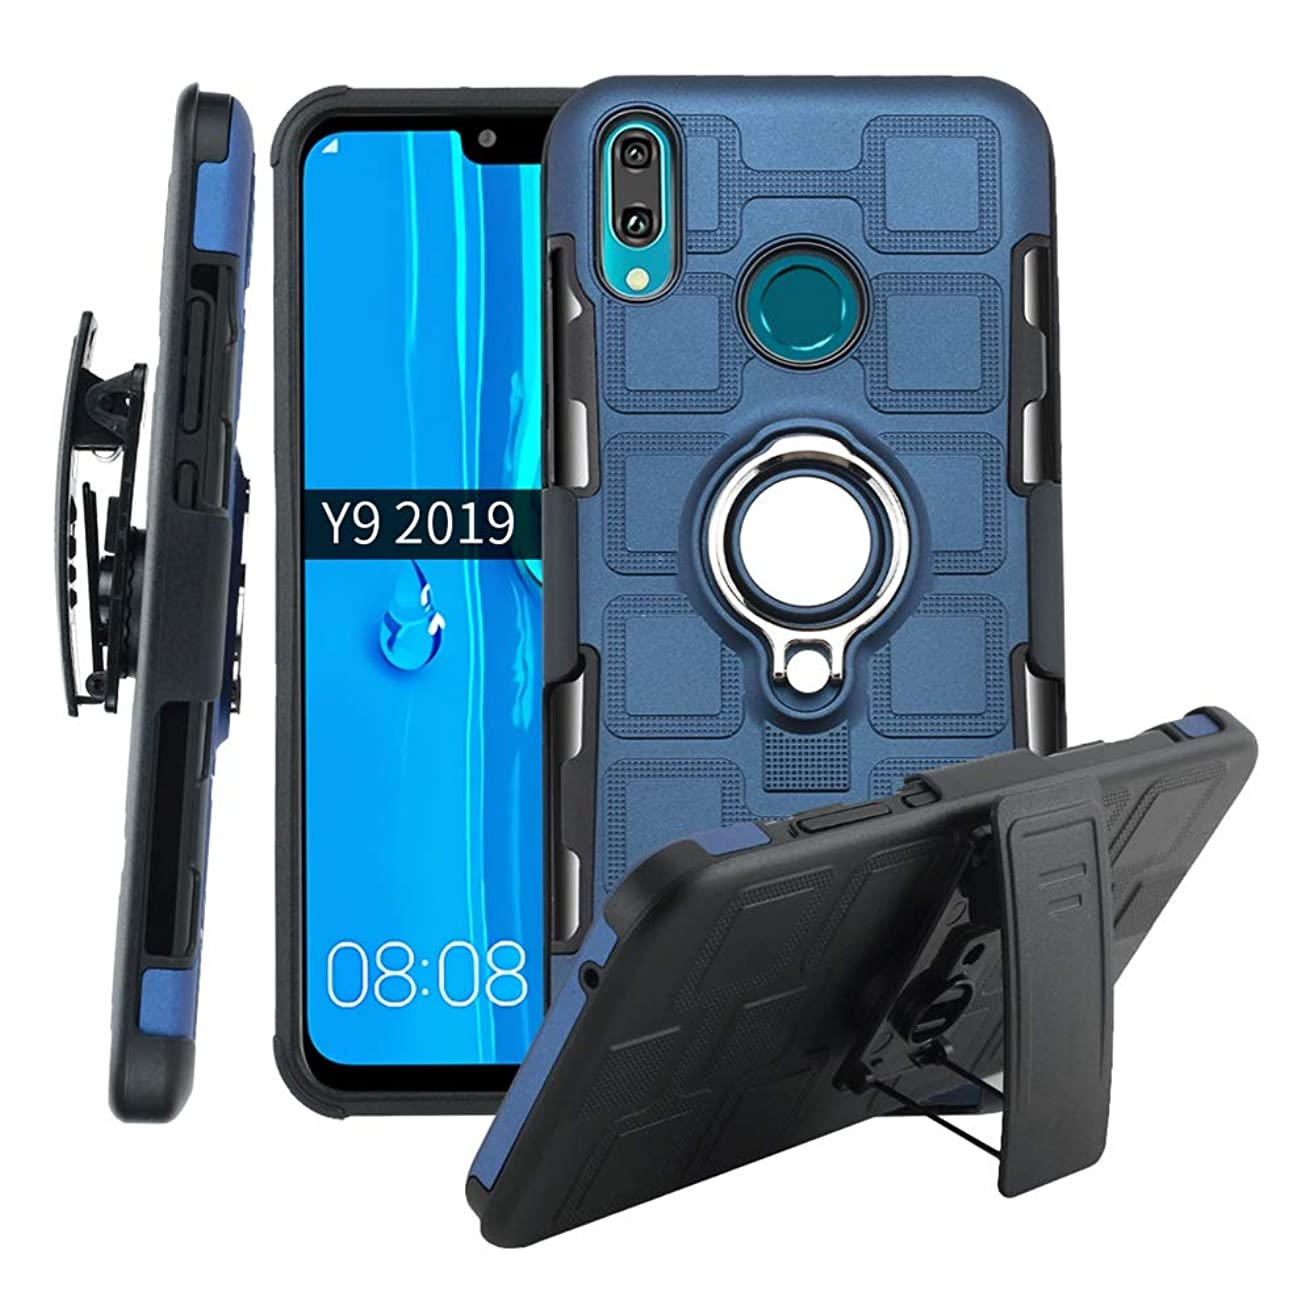 Lantier High Impact 3 Layer Hybrid Full Shockproof Armor Rugged Holster Protection Case with Kickstand Magnet 360 Degree Rotating Ring Belt Swivel Clip for Huawei Y9 2019 Dark Blue vrmrtr2030265697